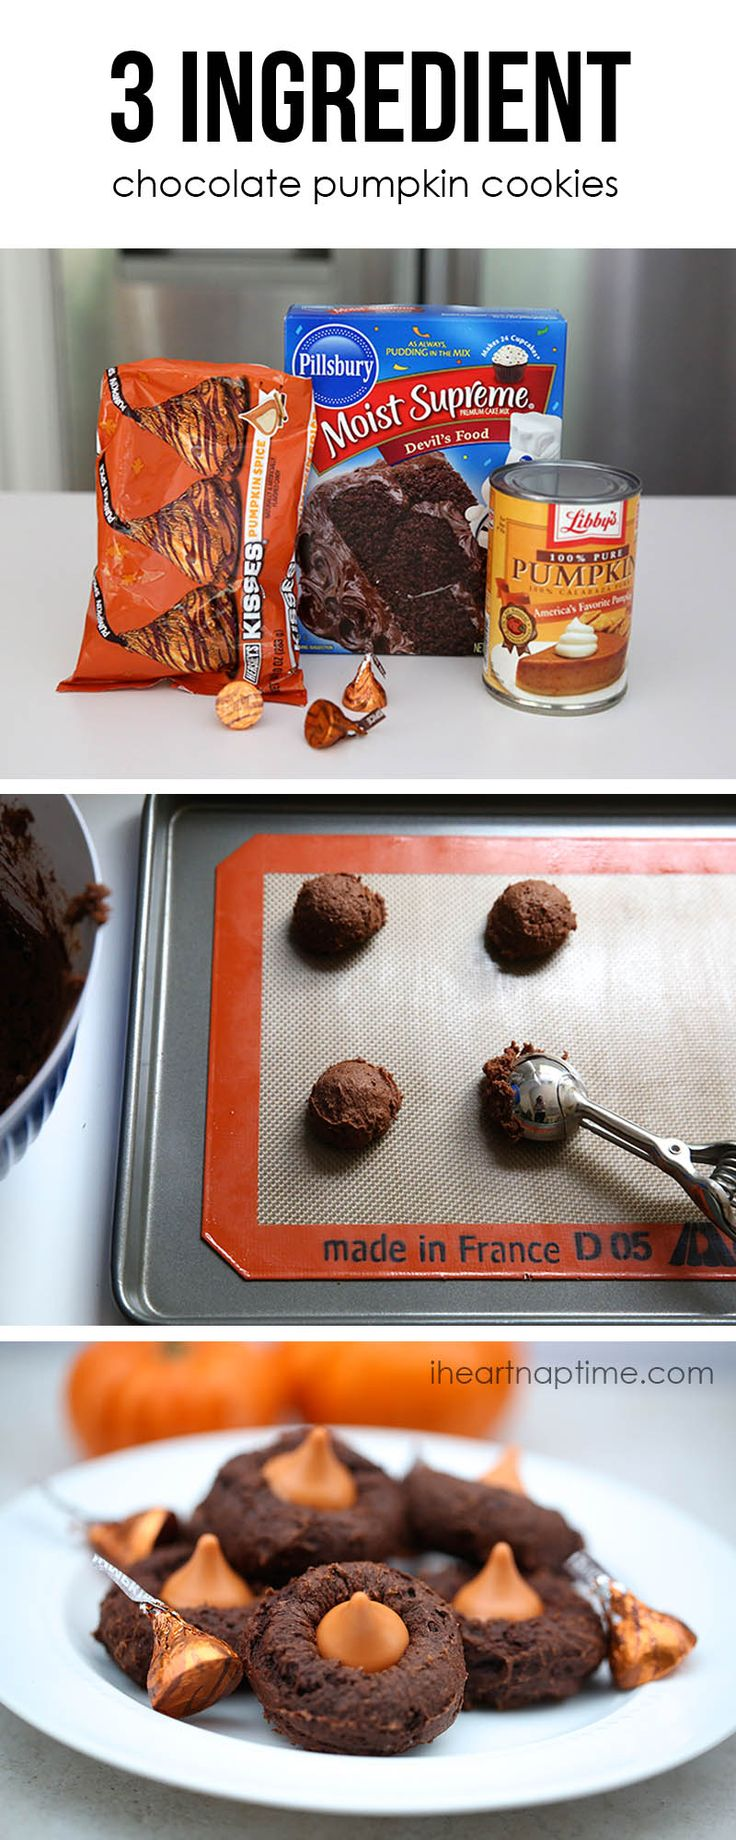 3 ingredient chocolate pumpkin cookies on iheartnaptime.com ...so easy and yummy! #fall #recipes (SF devils food cake mix.  Pumpkin, and I'm ok eating the sugar from one hershey kiss.) Making this soon!